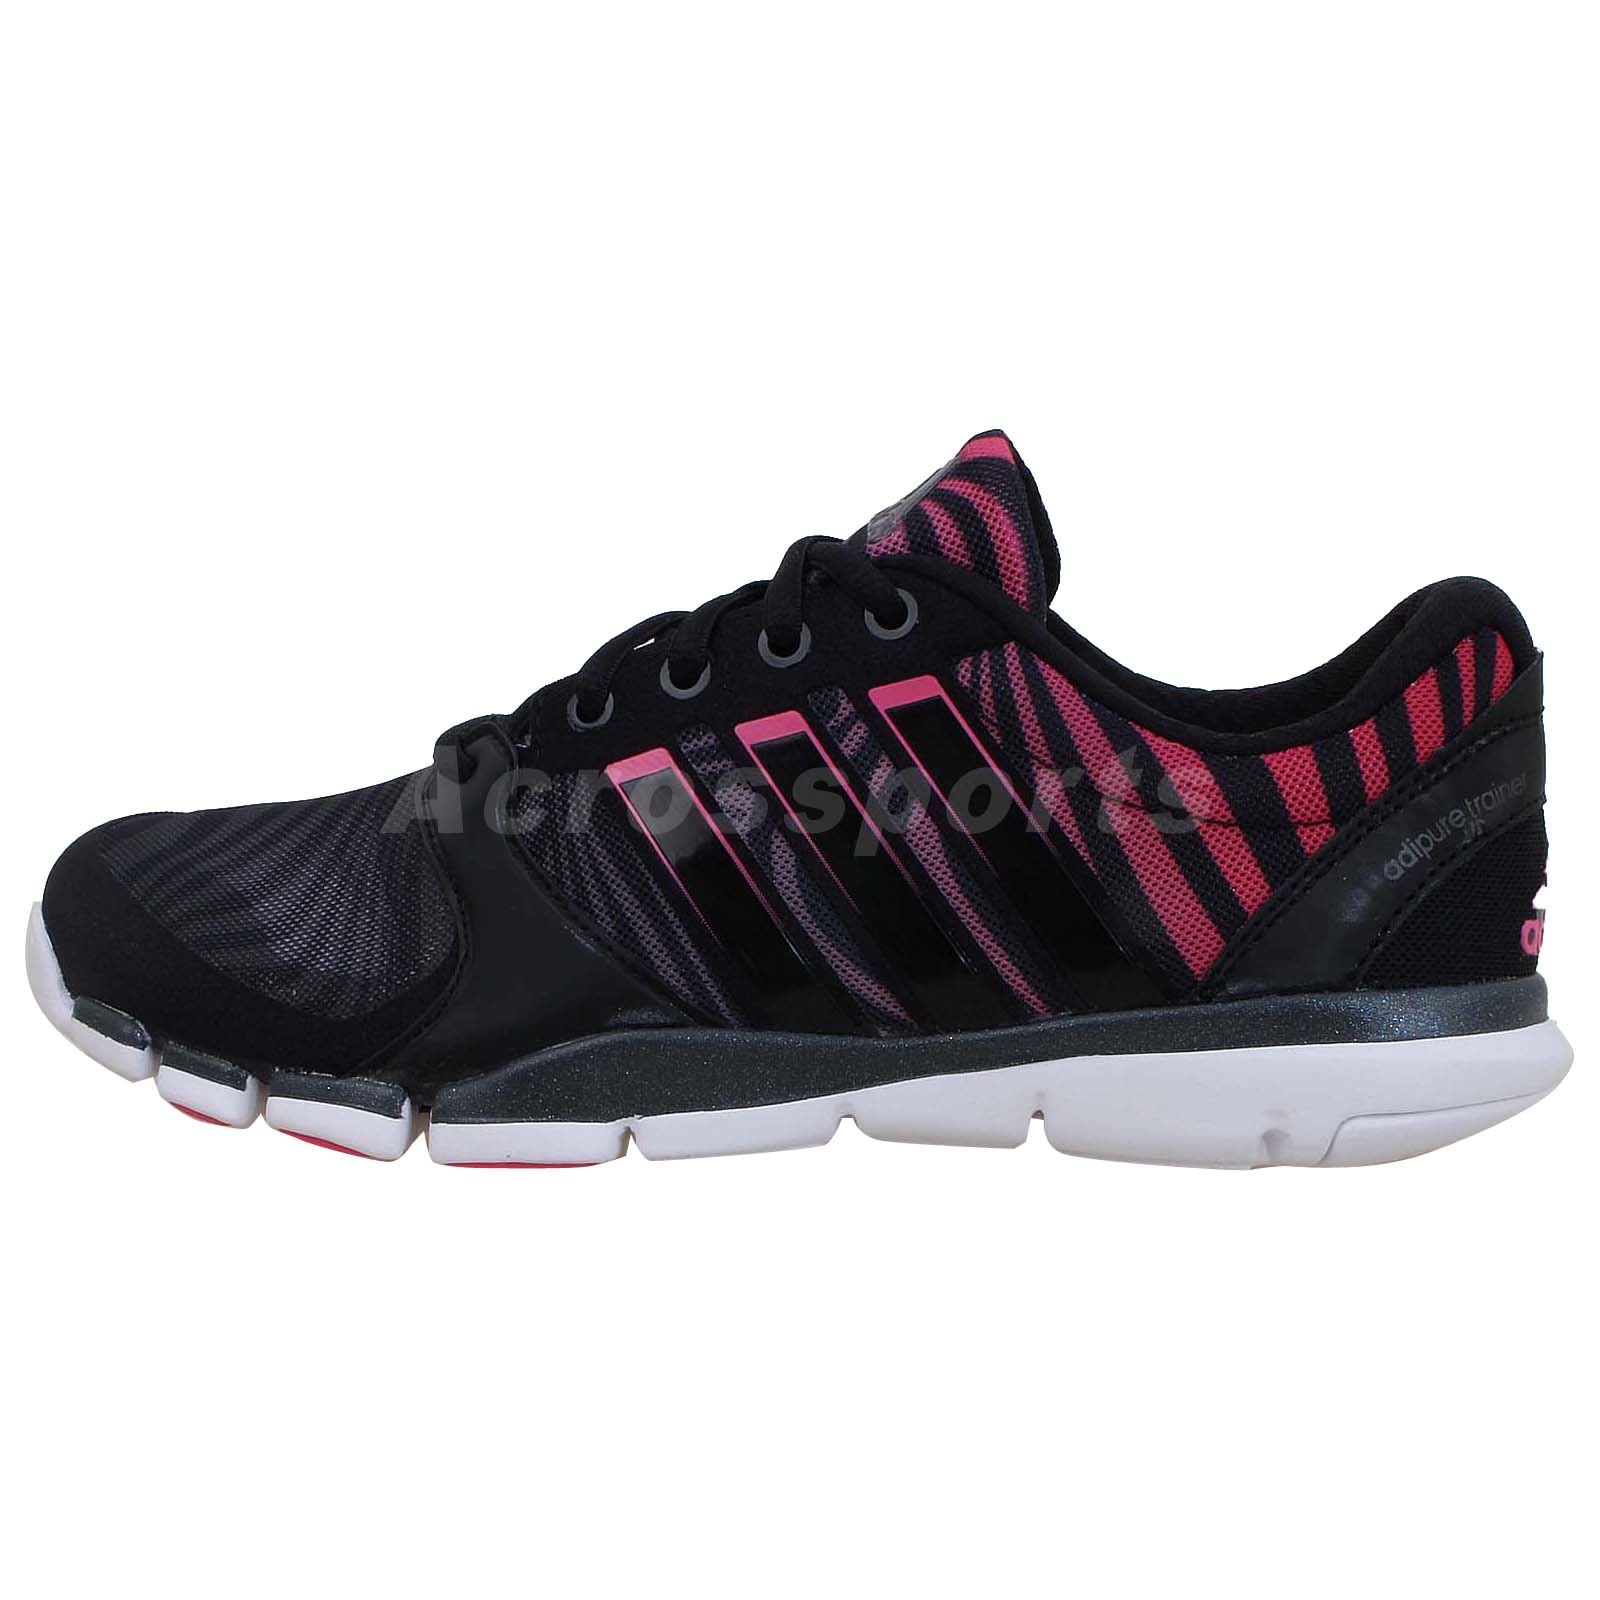 adidas climacool review